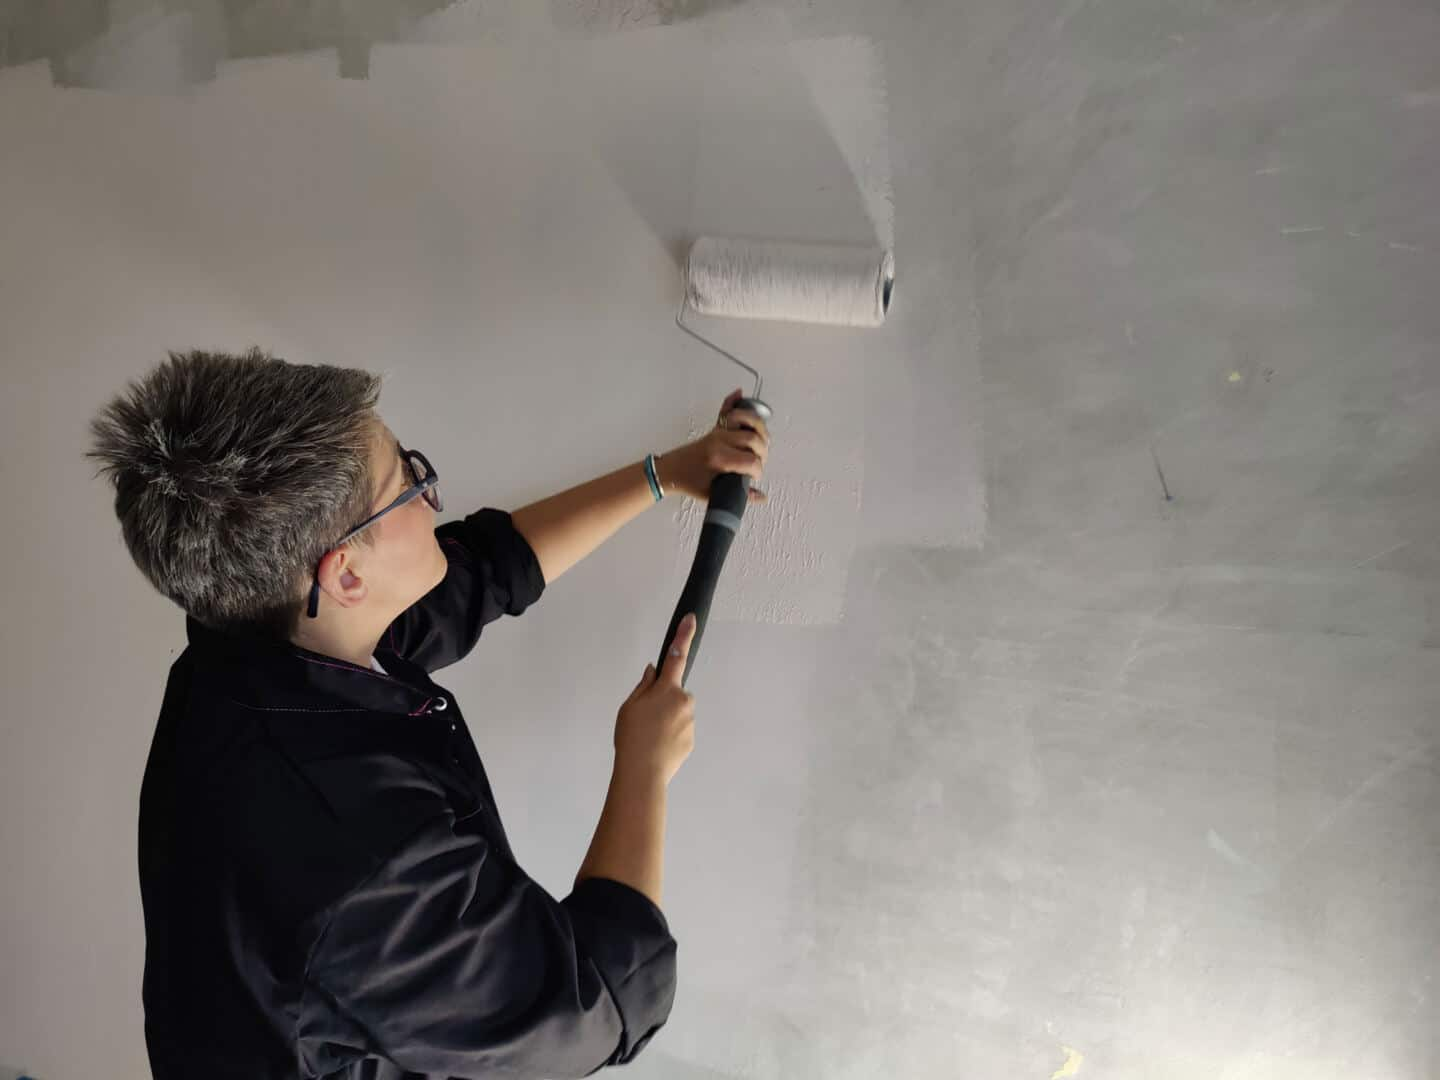 Blogger Stacey Sheppard applying Dulux Simply Refresh Paint to a wall with a roller in preparation for creating a DIY Painted Arch Accent Wall